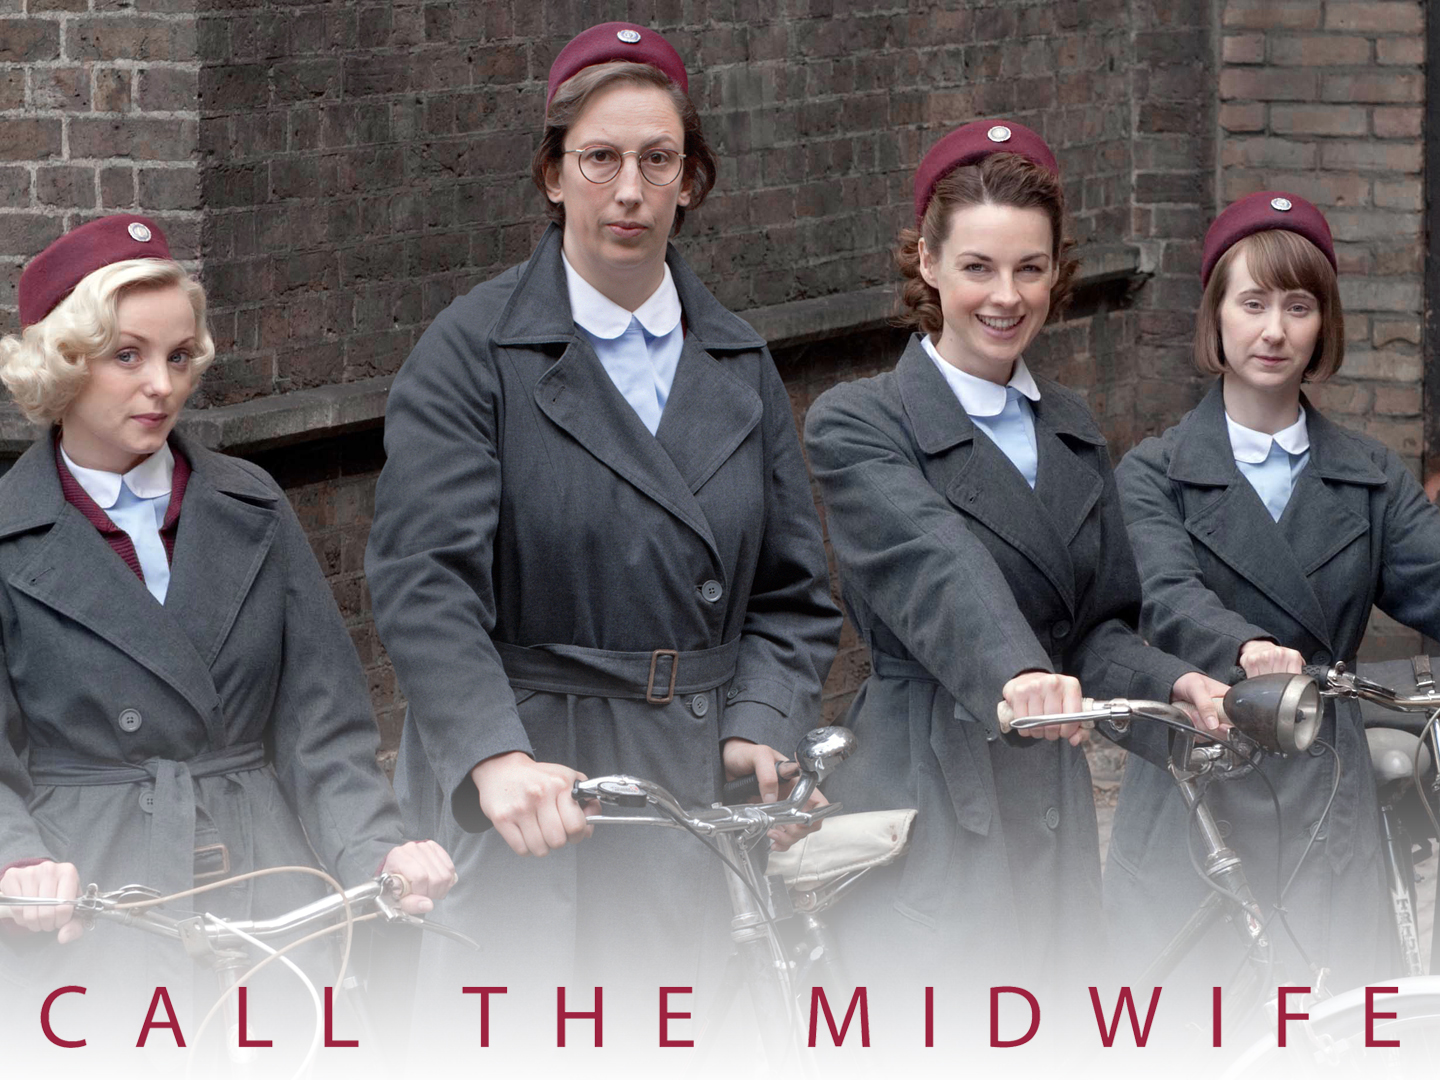 Call The Midwifes